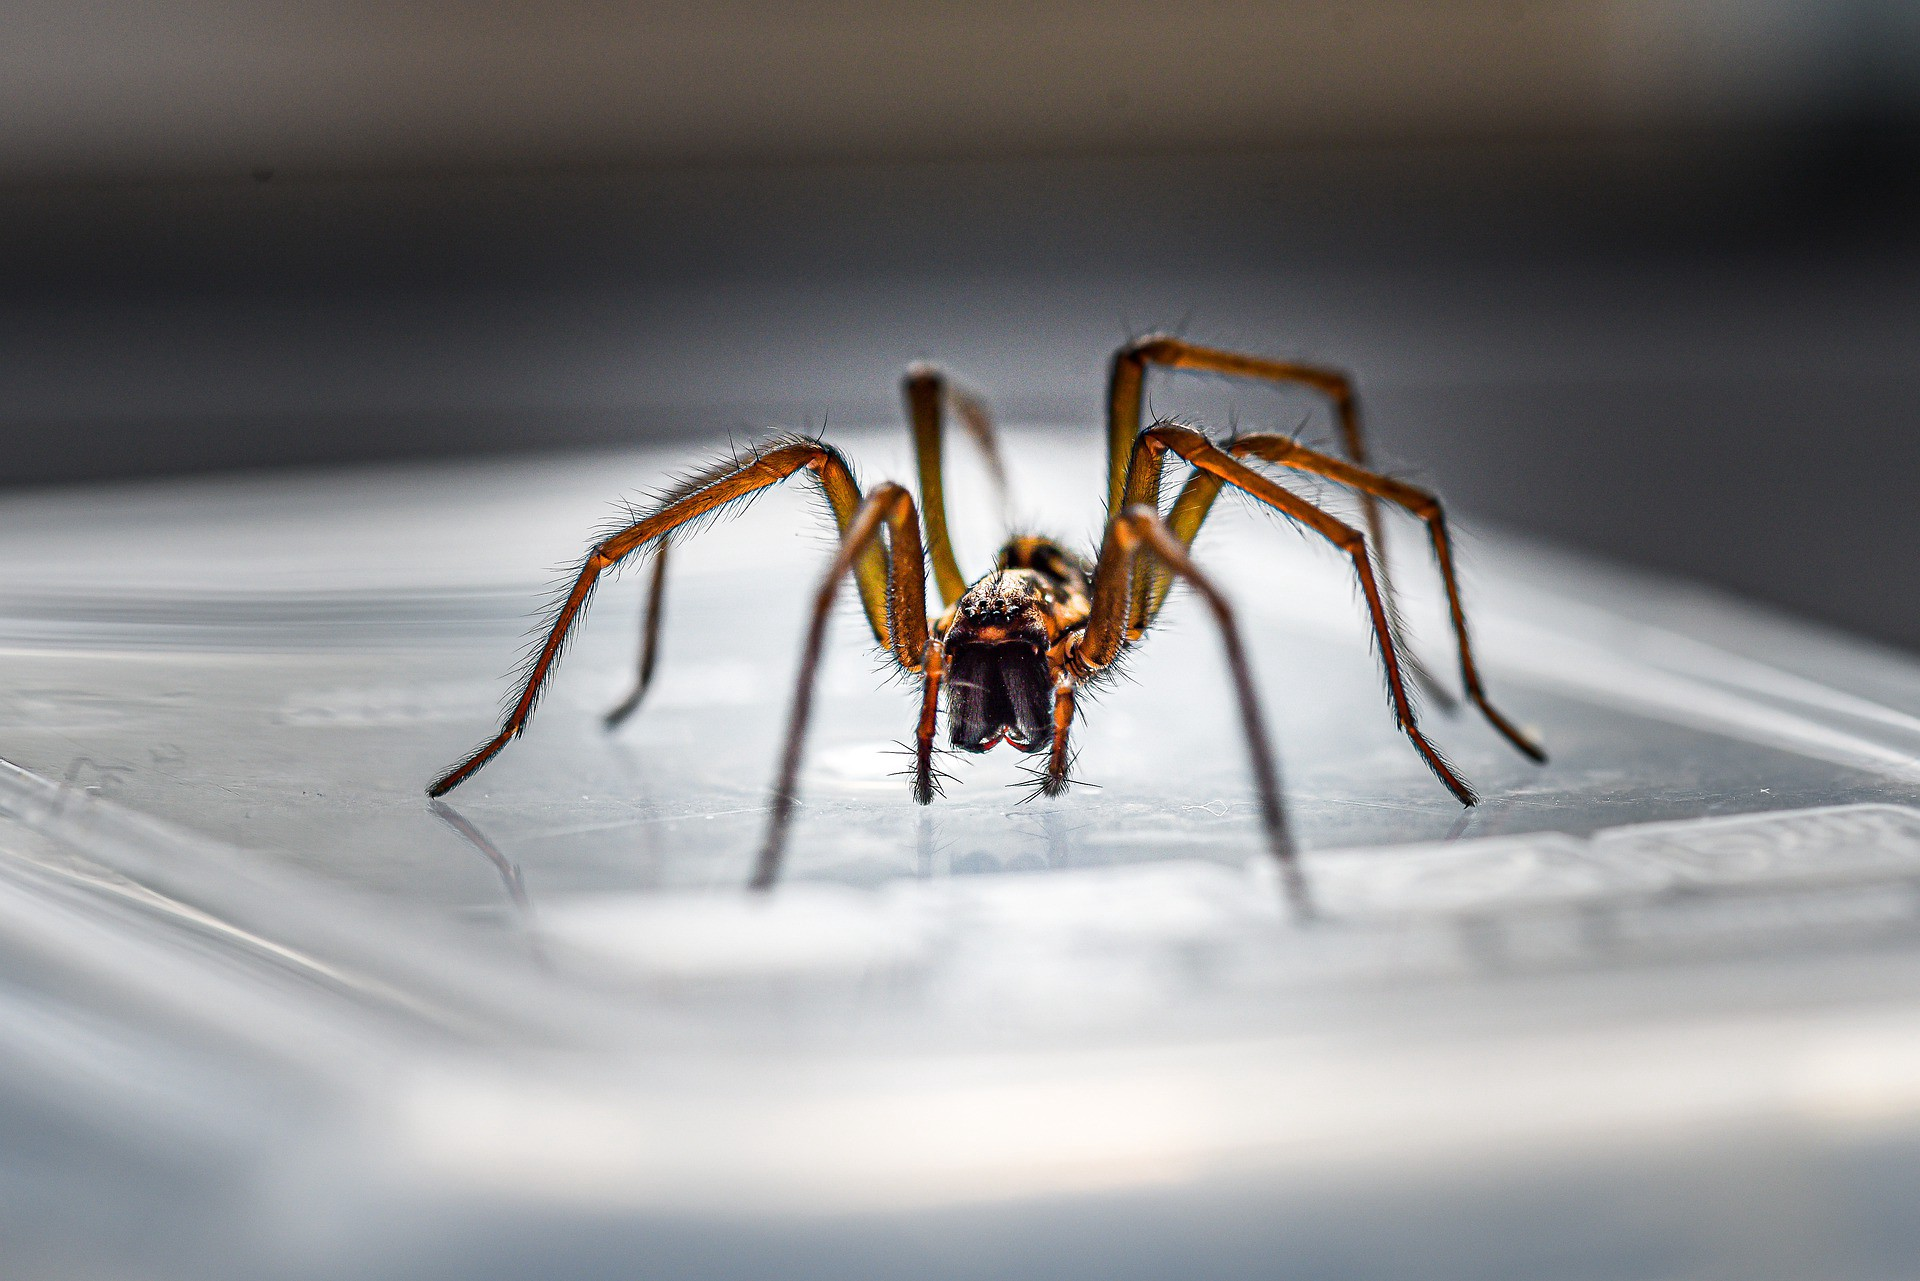 A large, ominous-looking brown spider crouches on a pale, ridged glass surface, facing the camera.